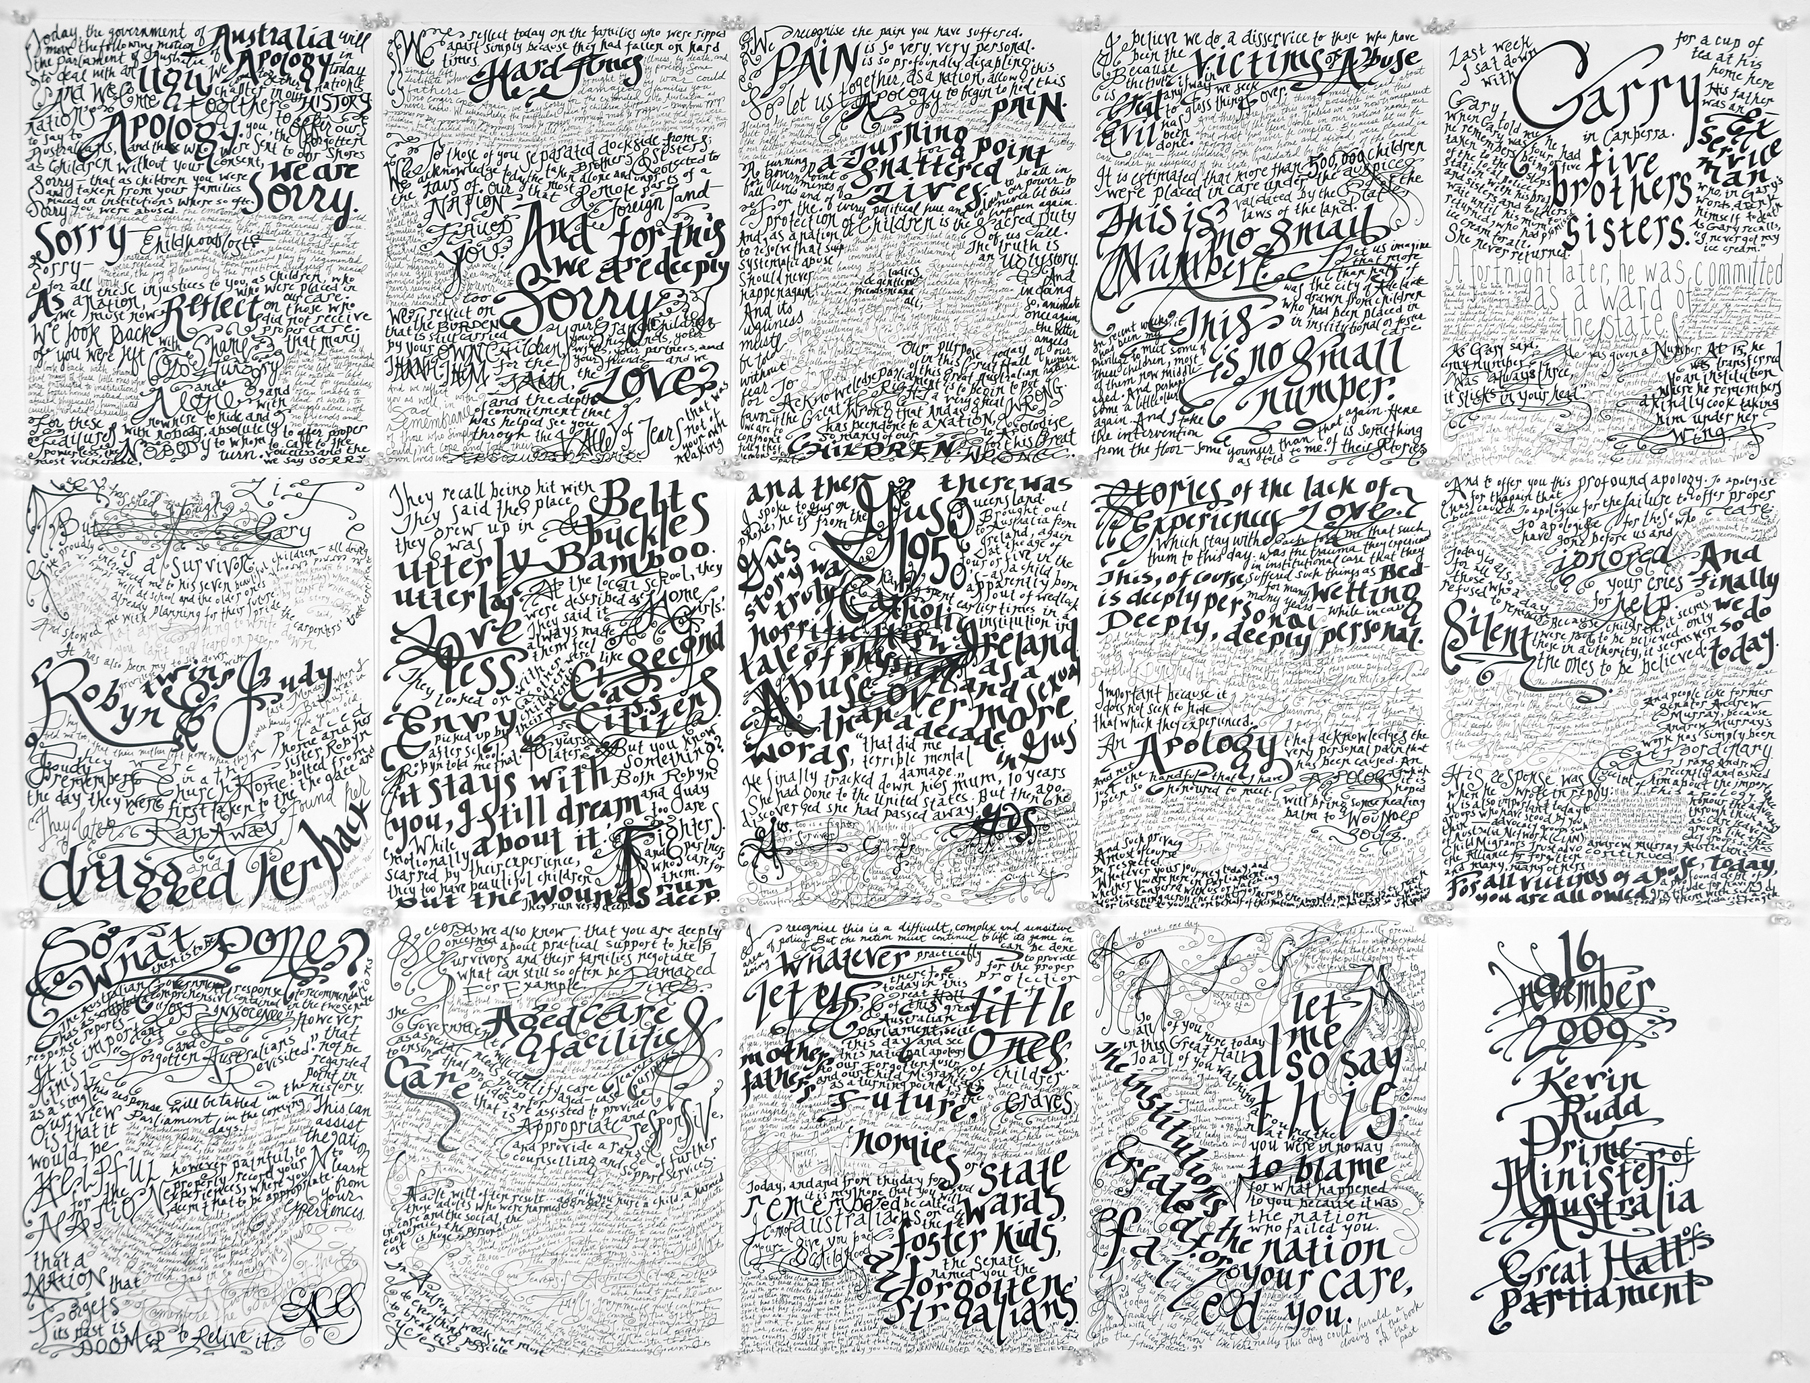 Apology to the Forgotten Australians and Former Child Migrants, 2009 (46 x 59 in)